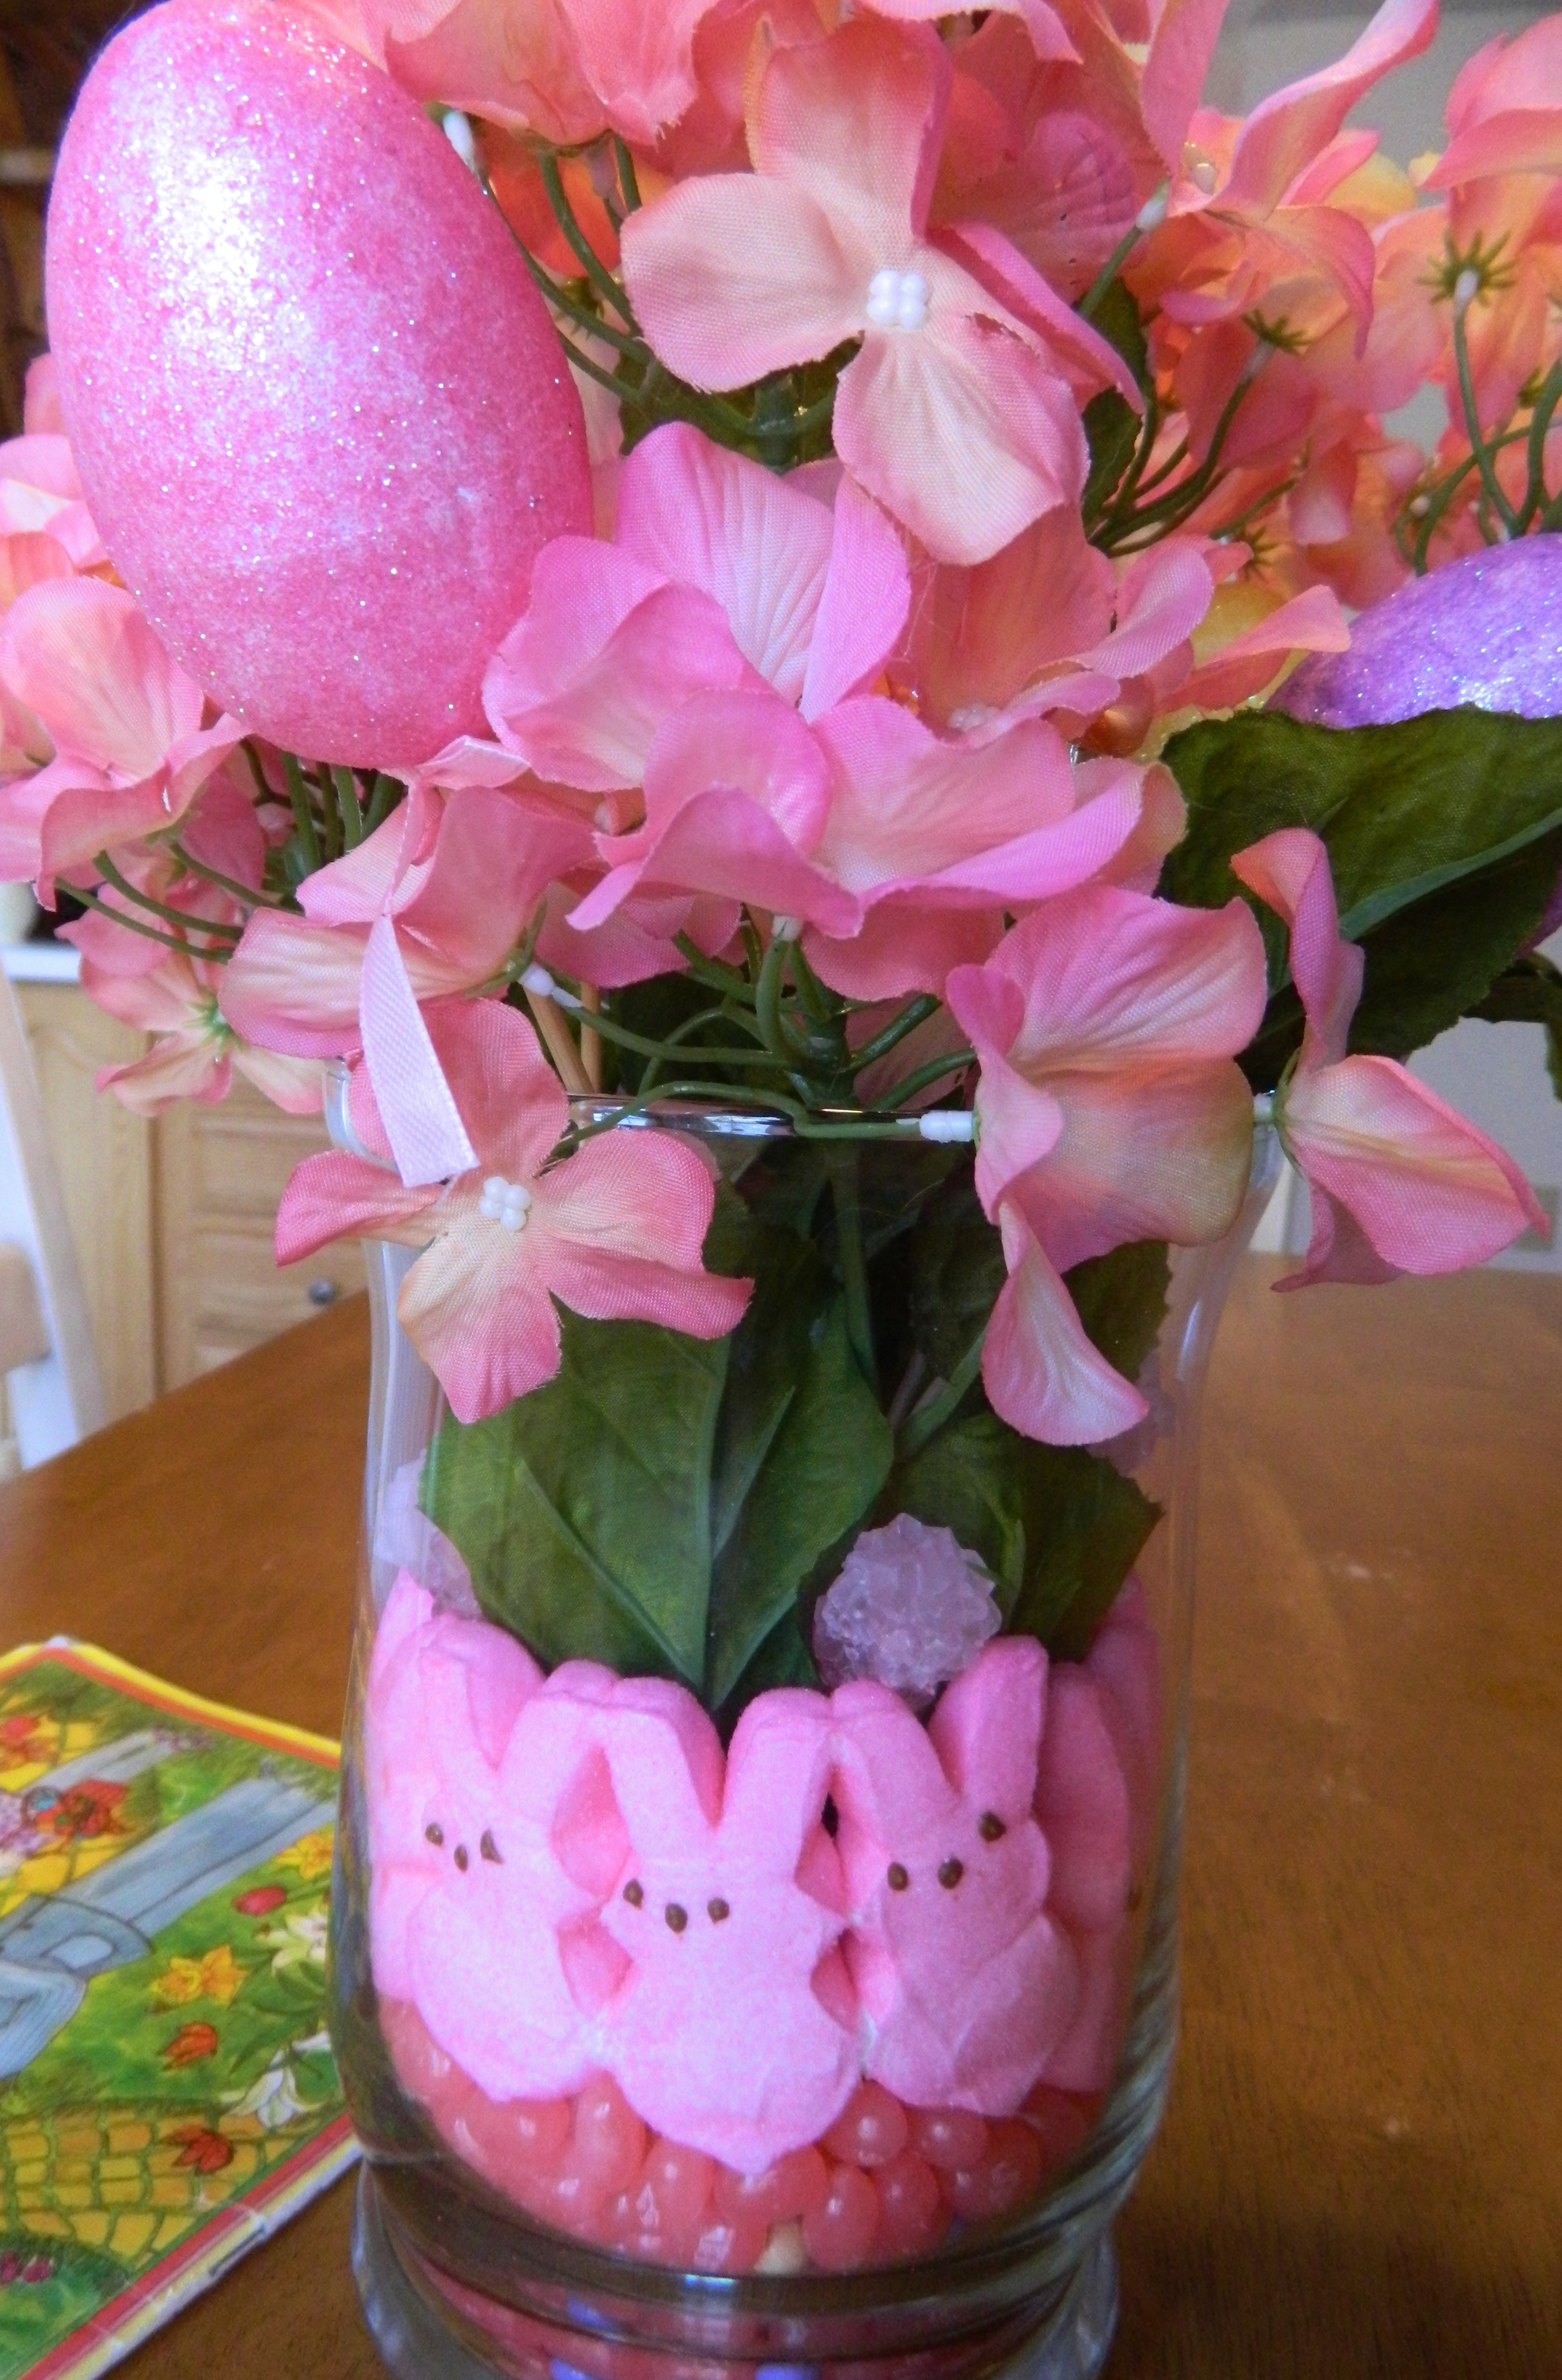 Cheap Spring Decorations: Adorable And Inexpensive Easter Centerpiece